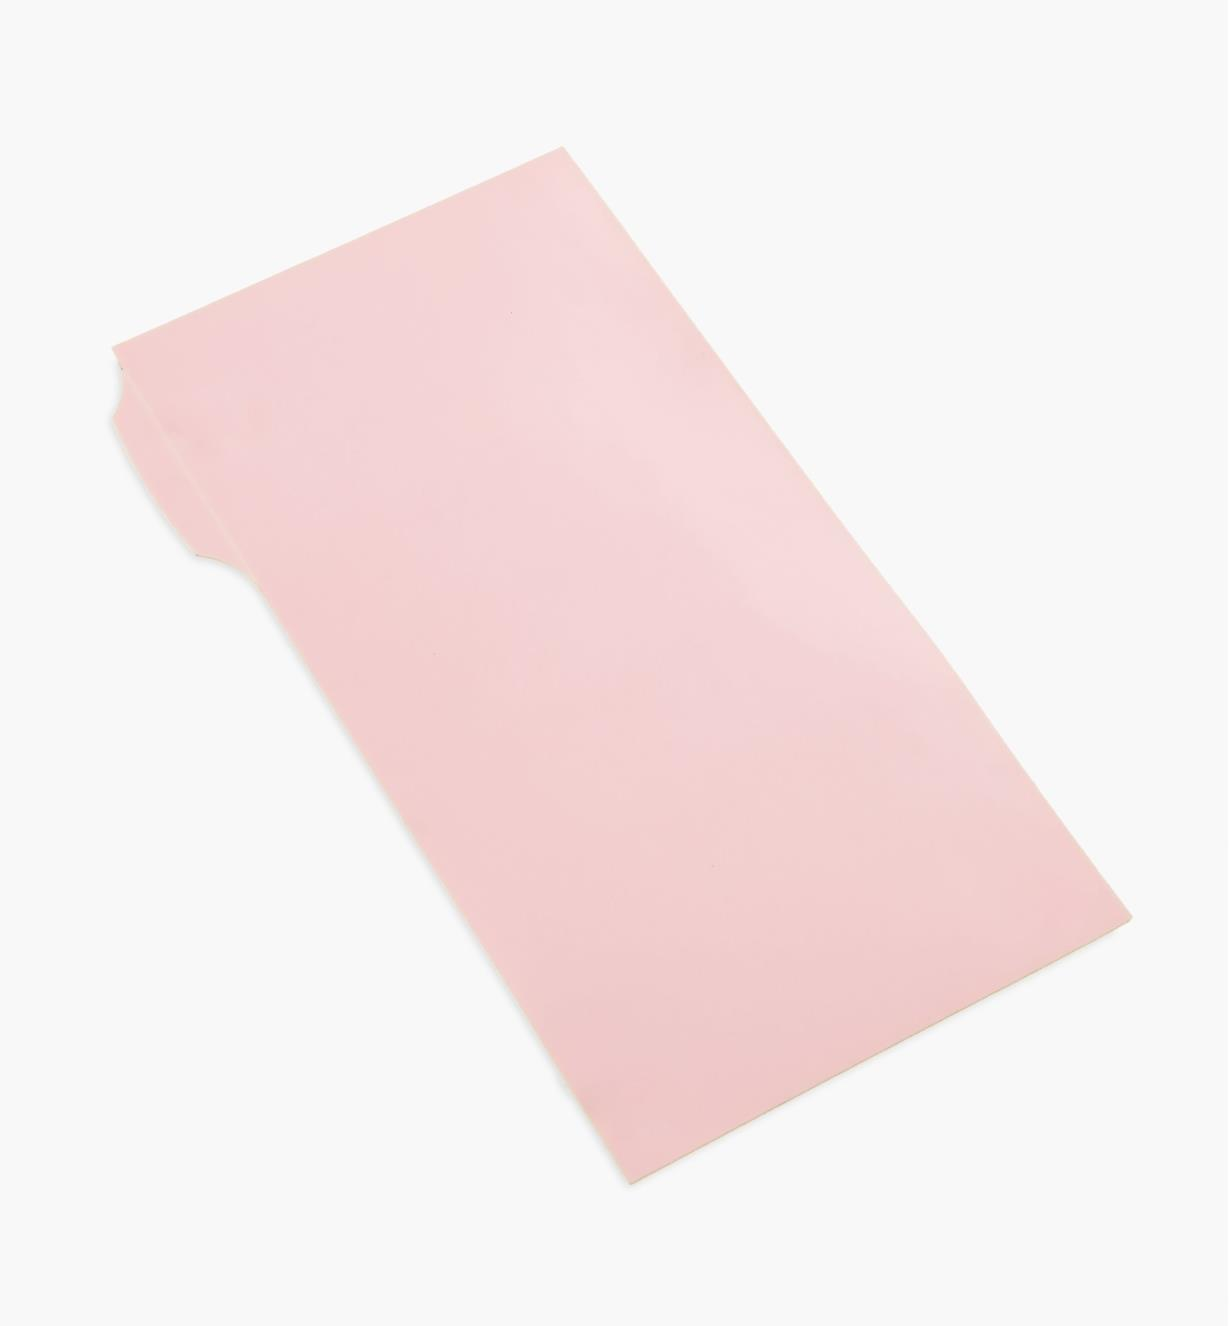 "54K9605 - 3µ PSA Diamond Film, 3"" x 6"" (pink)"